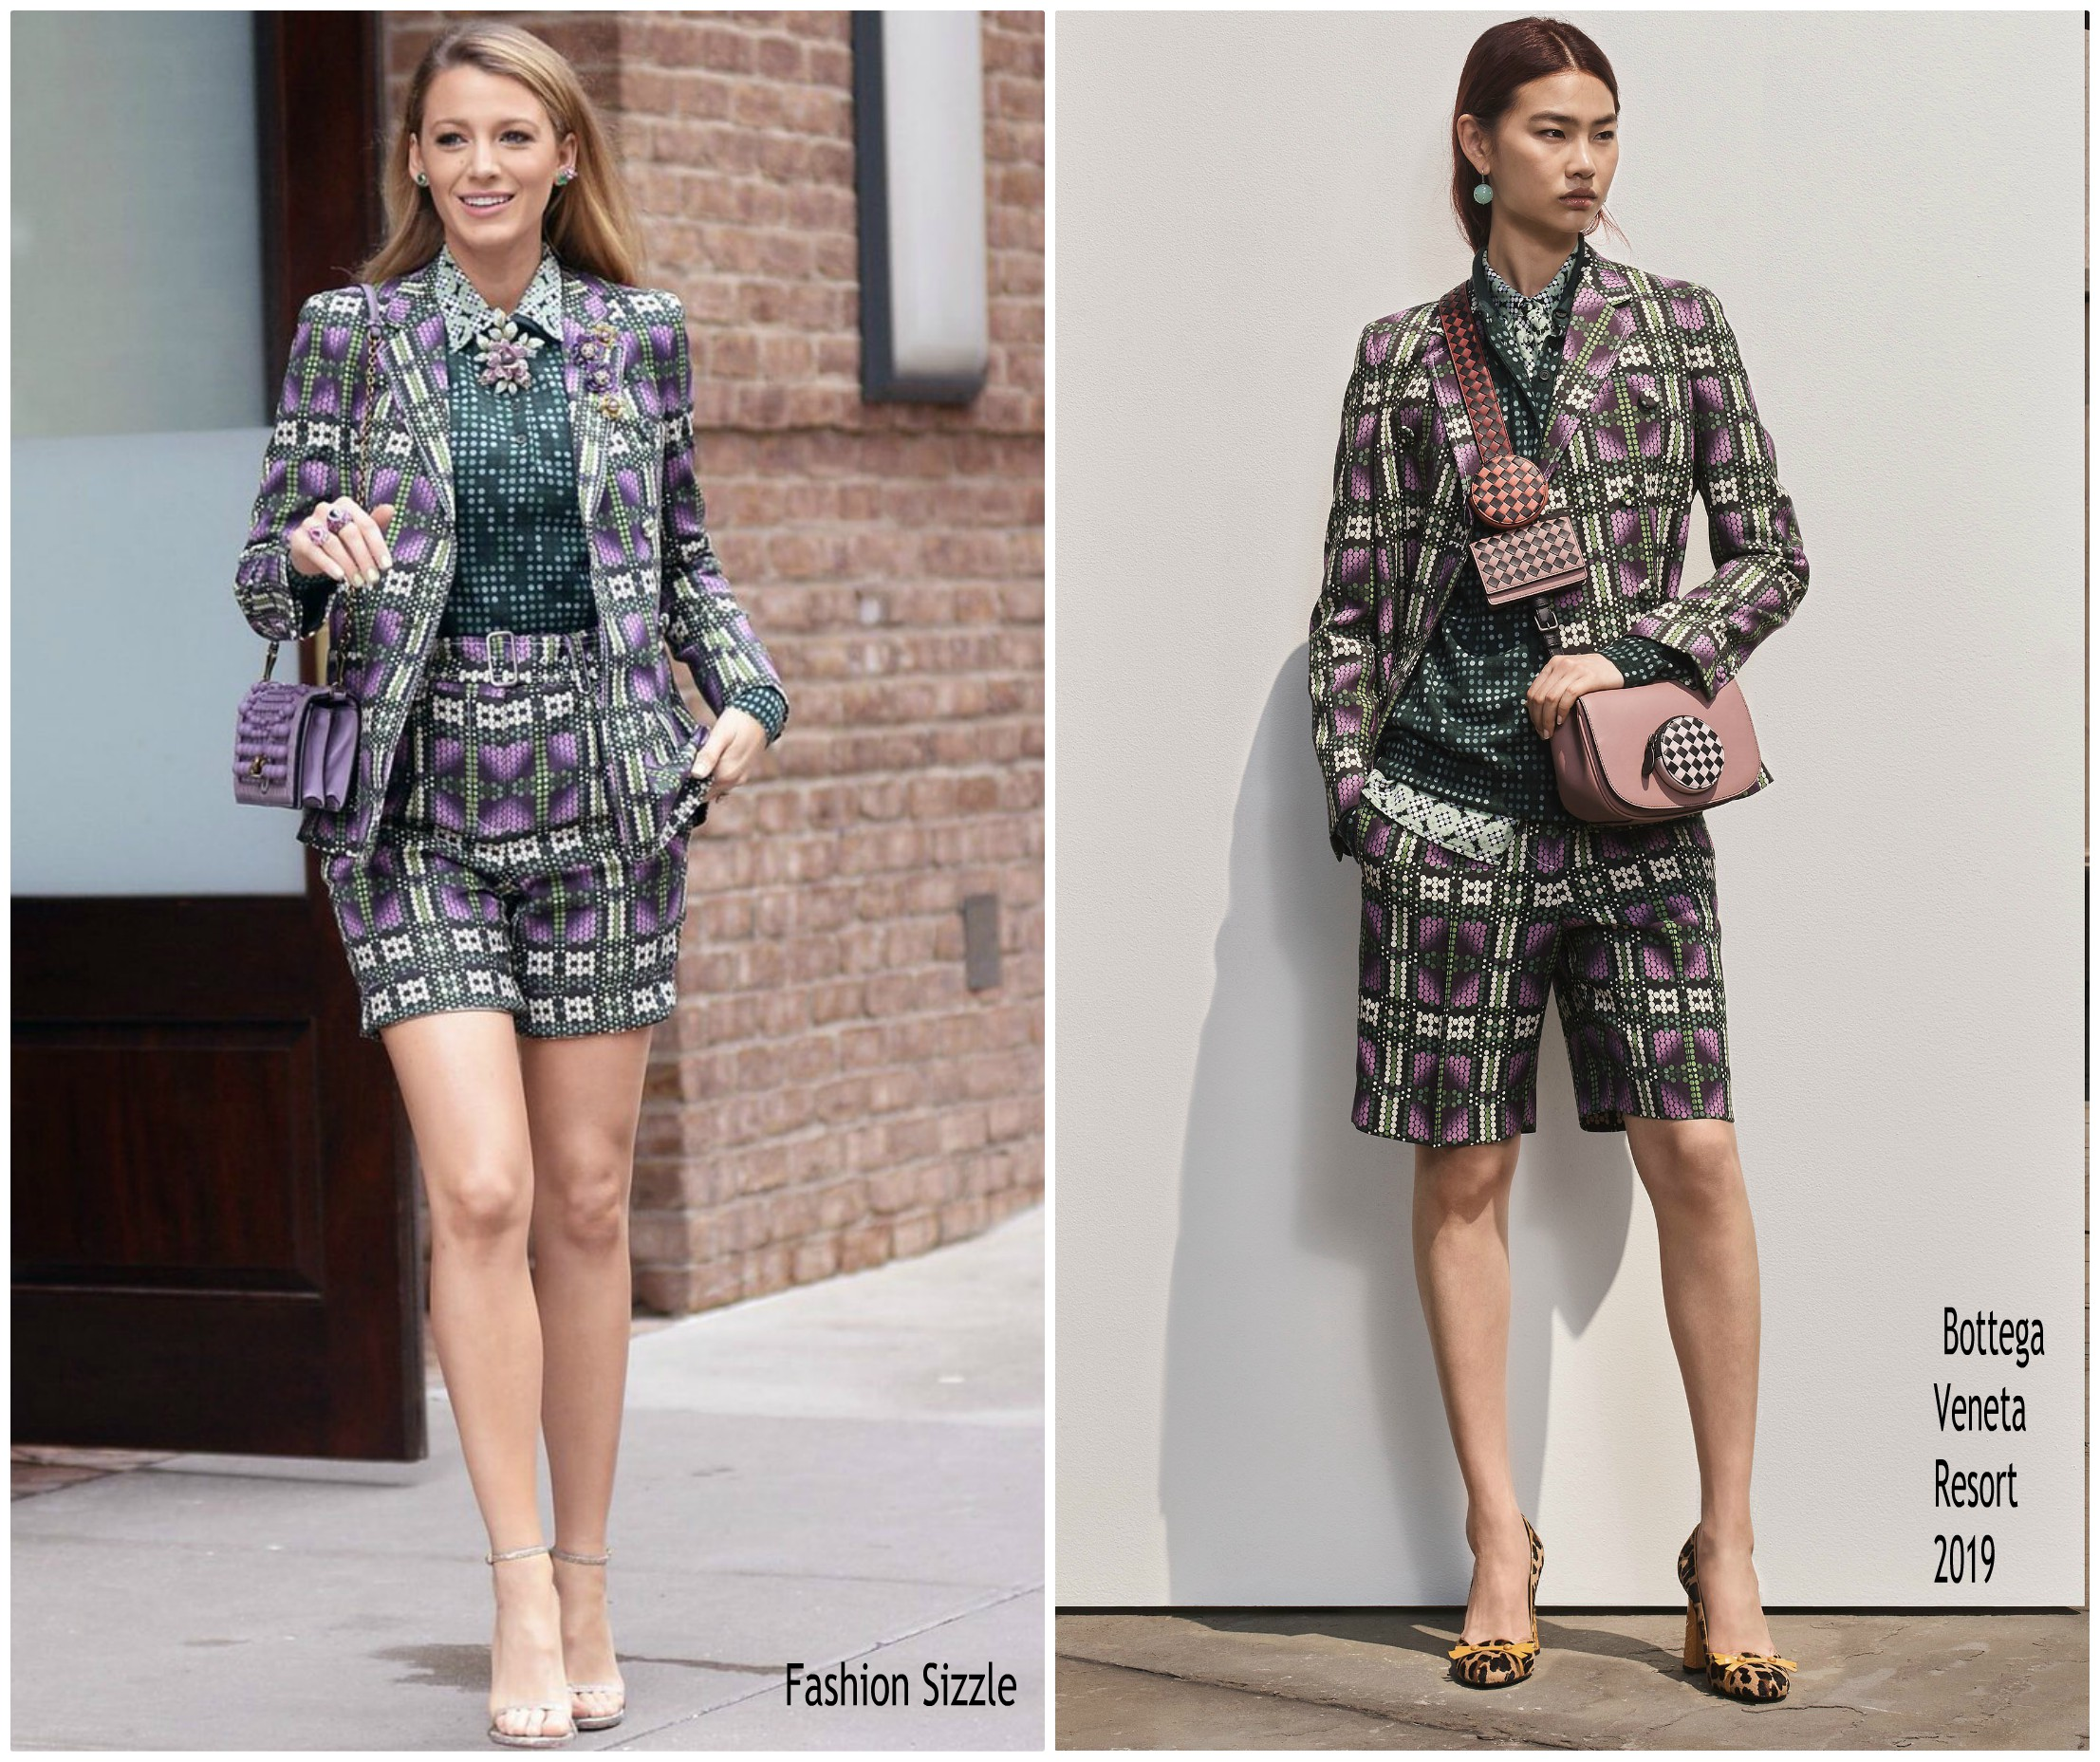 blake-lively-in-bottega-veneta-a simple-favor-new-york-promo-tour